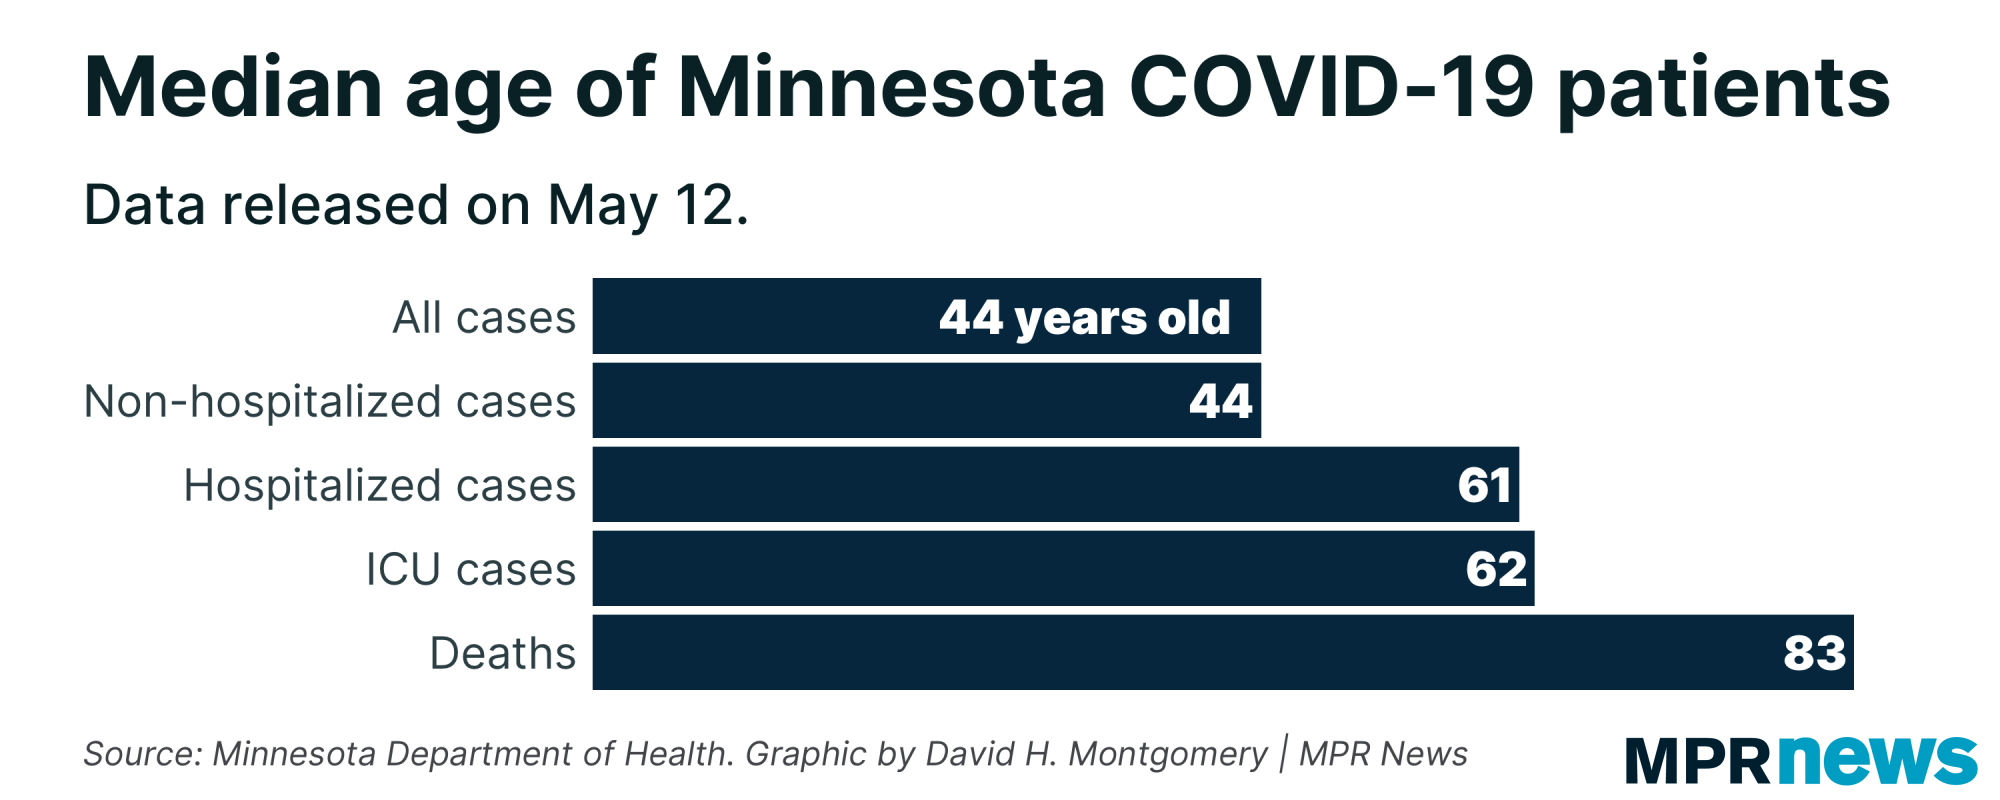 A graph showing the median age of Minnesota COVID-19 patients.